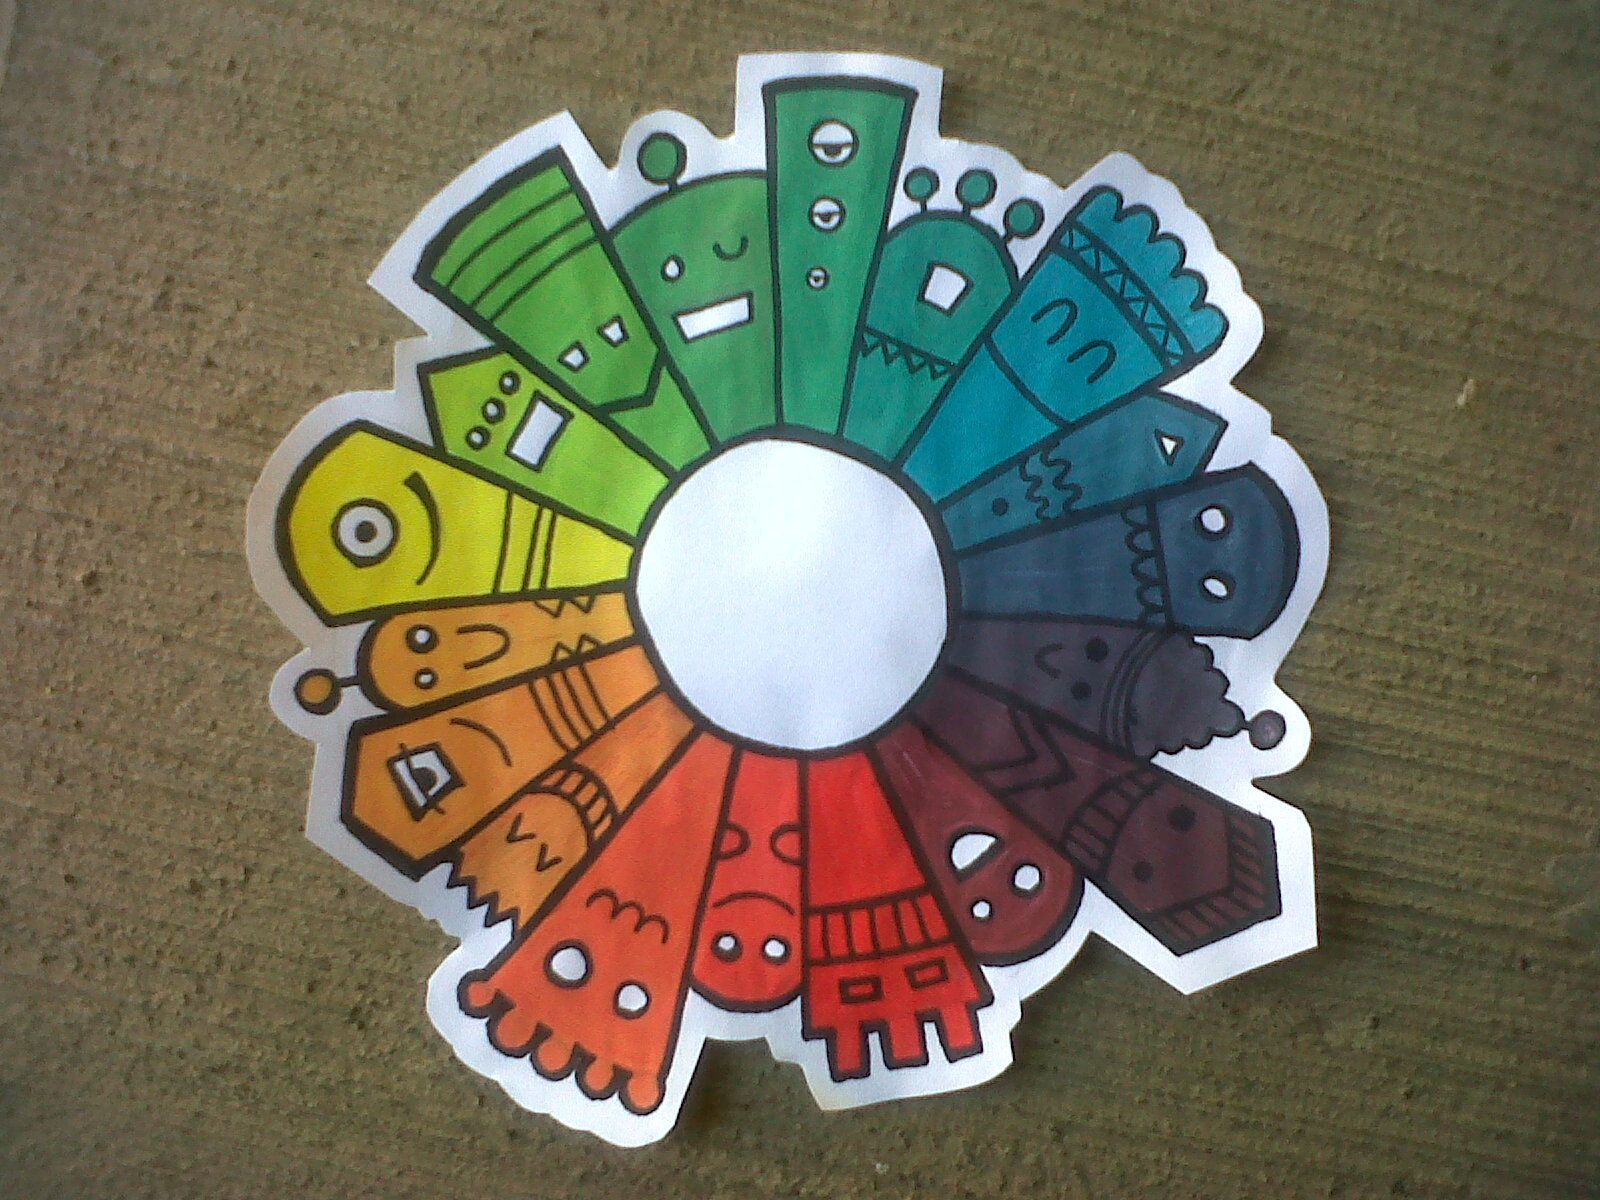 Color theory online games - Color Wheel Lesson Color Theory Mixing Color All They Get For This Is